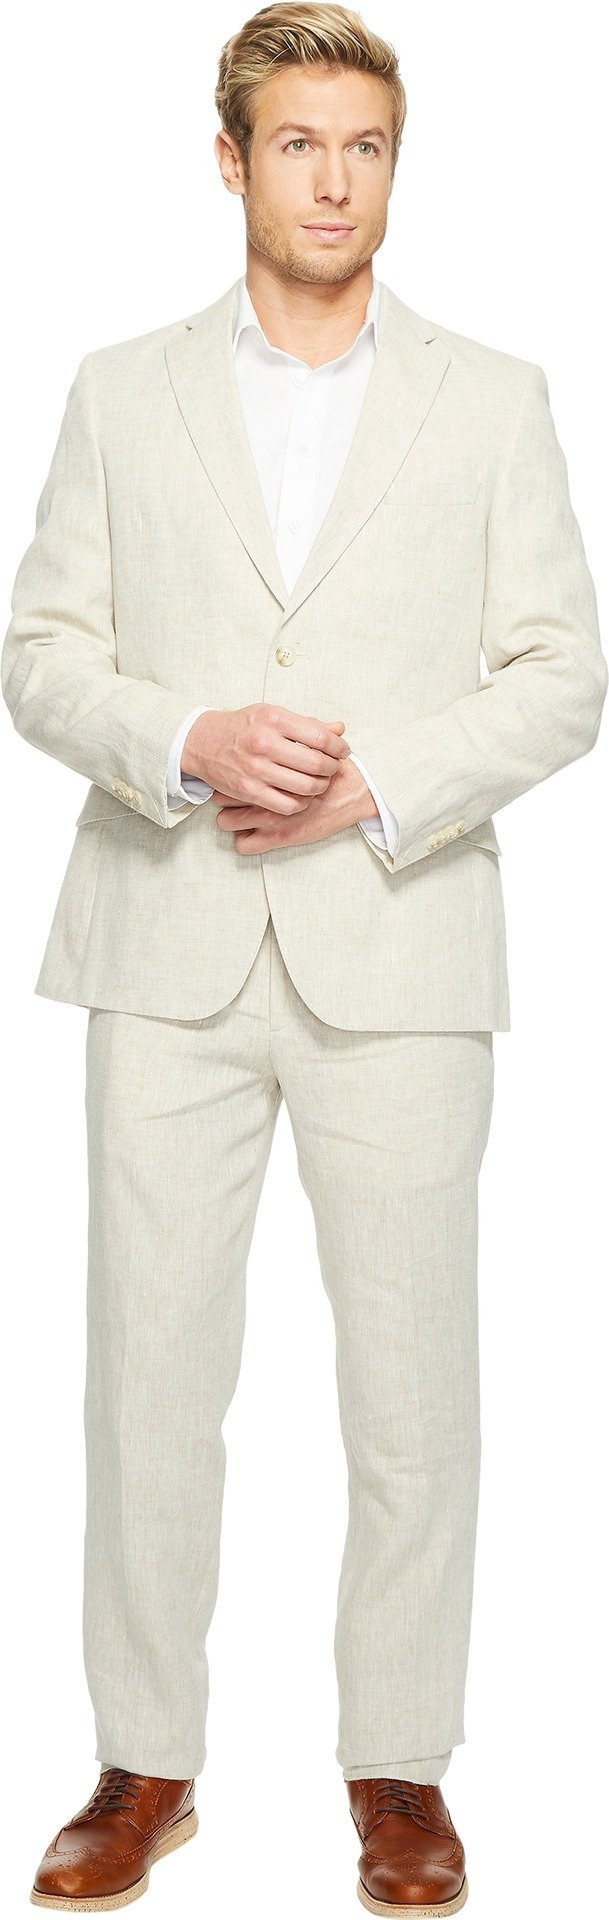 Kroon Men's Aim Active Inspired Movement Linen Suit With Flex Lining, Natural, 44 Long